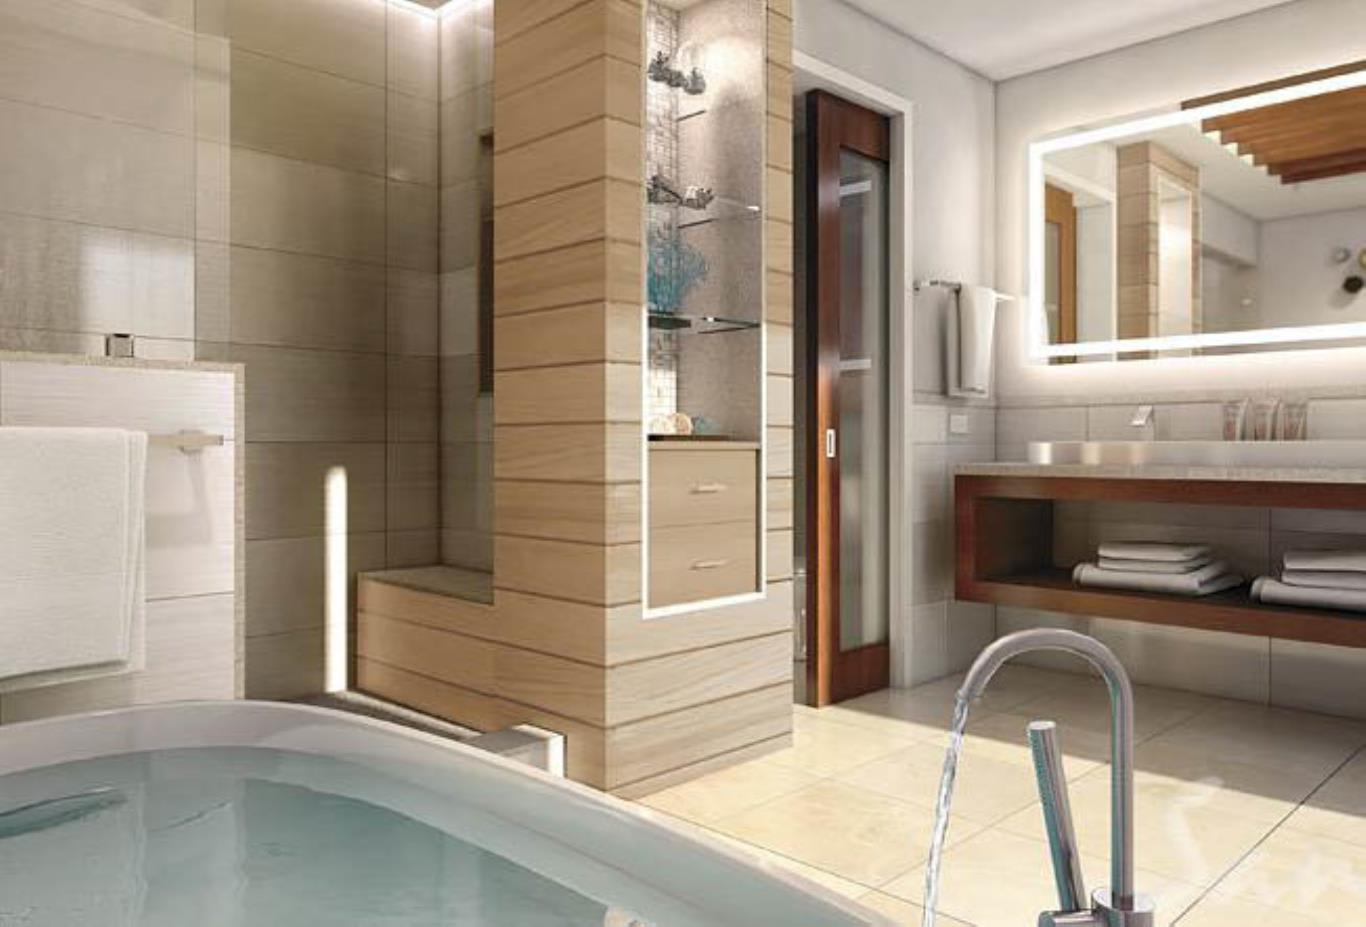 Caribbean Beachfront Walkout Grande Luxe Club Level Room Tranquility Soaking Tub - WGBT